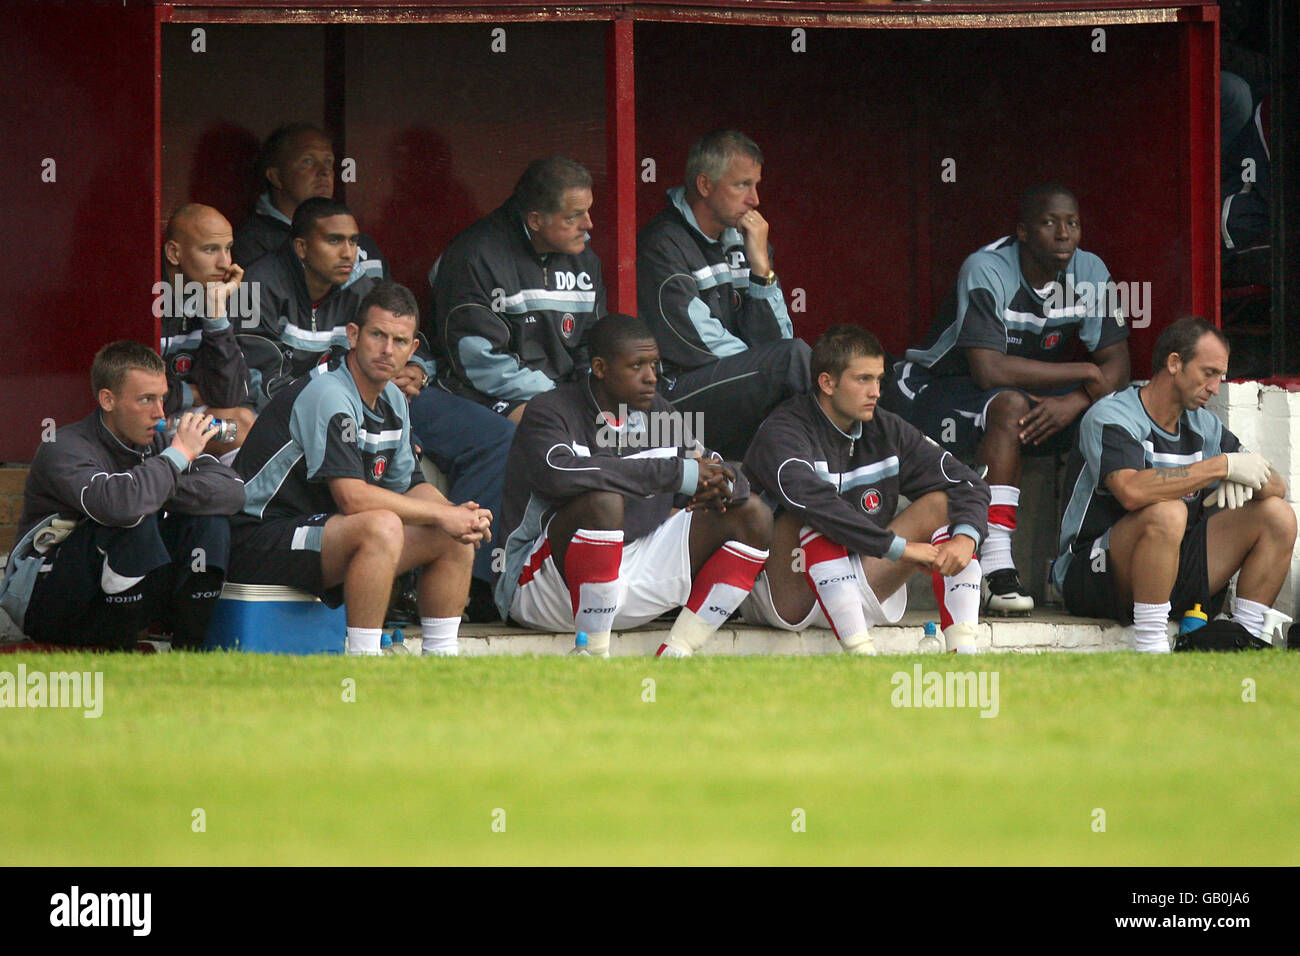 Soccer - Friendly - Welling United v Charlton Athletic - Park View Road - Stock Image